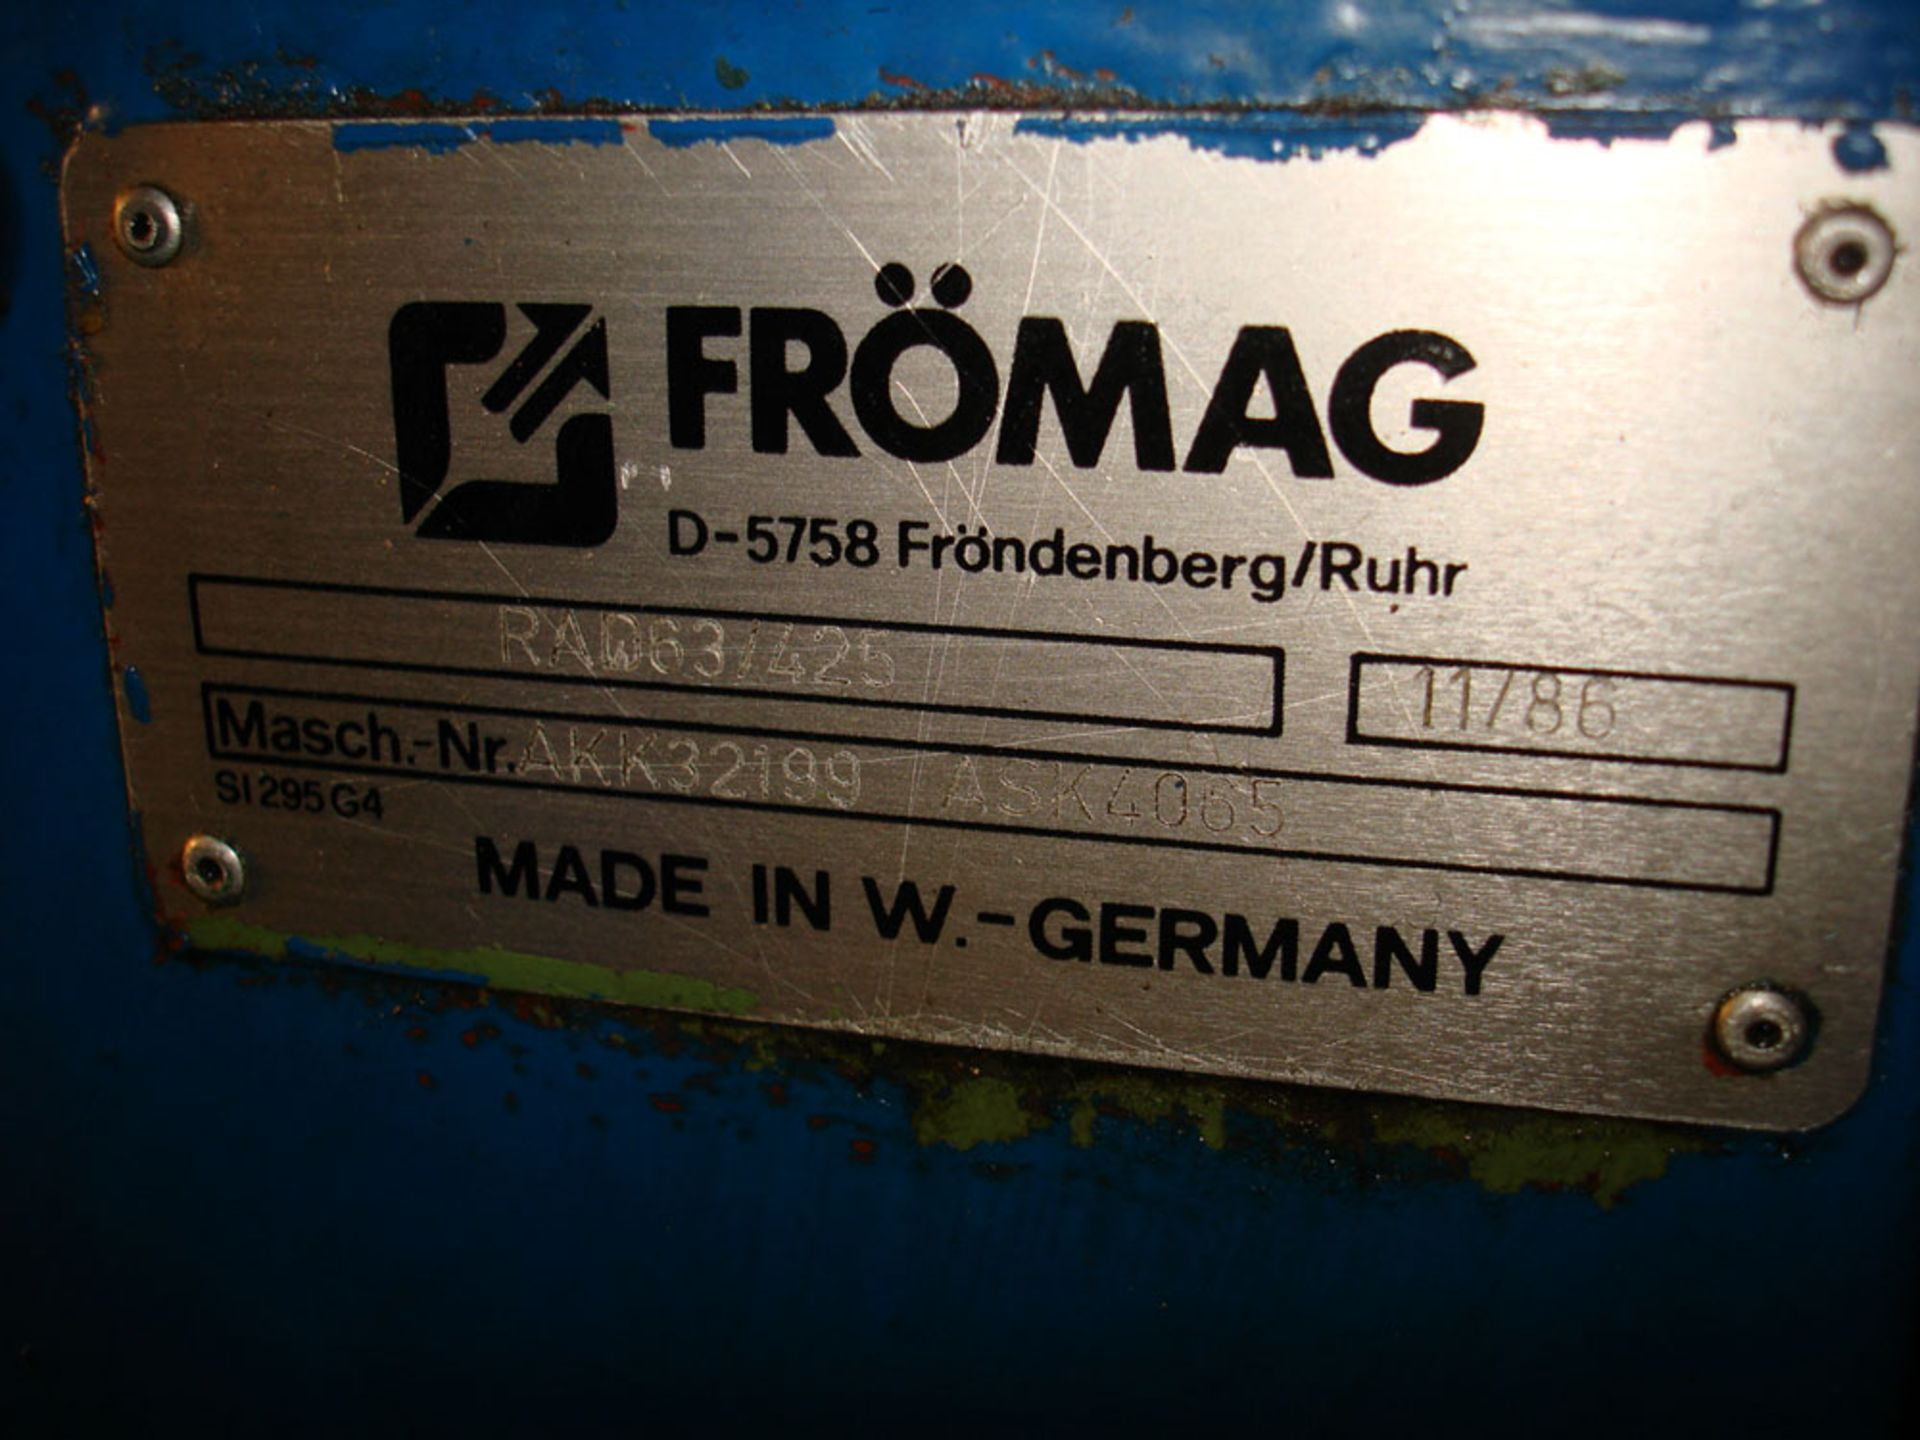 Fromag Rapida RAD 63/425 Broach / Key Seater. New 1986. Pendant Control. - Image 10 of 10